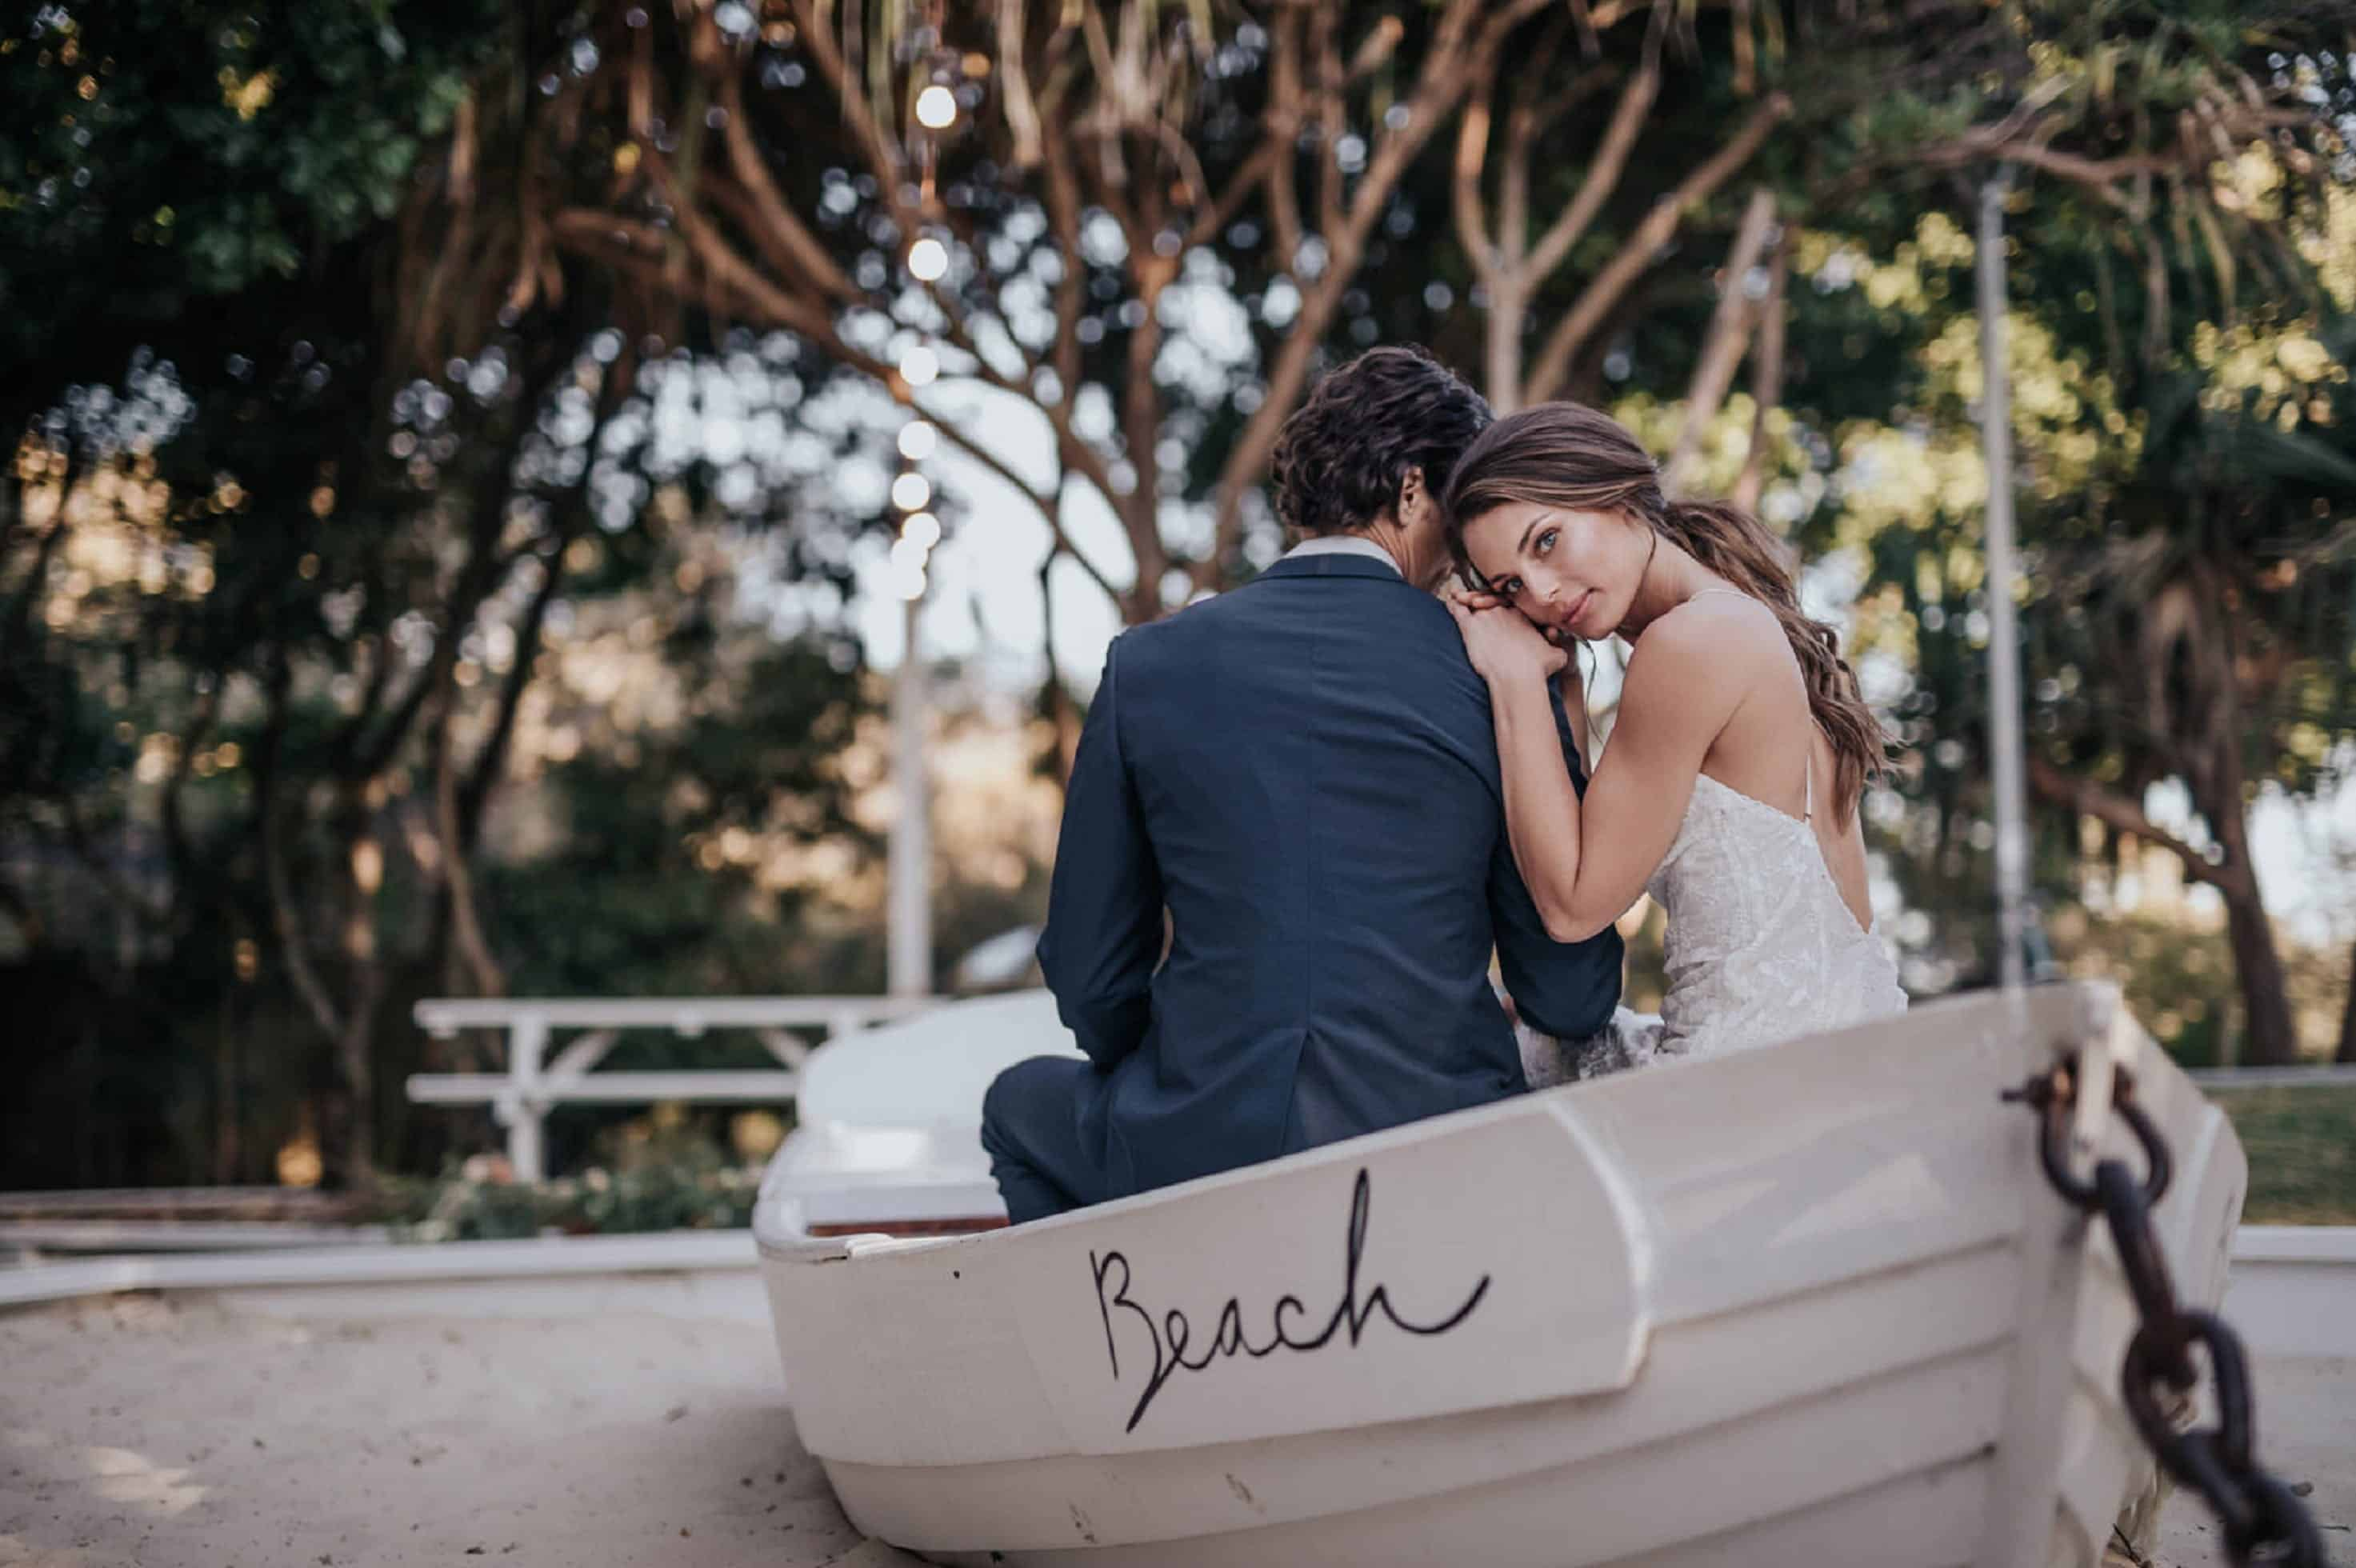 Man Wearing Blue Suit Jacket and Woman Wearing White Wedding Gown Sitting on White Canoe Boat